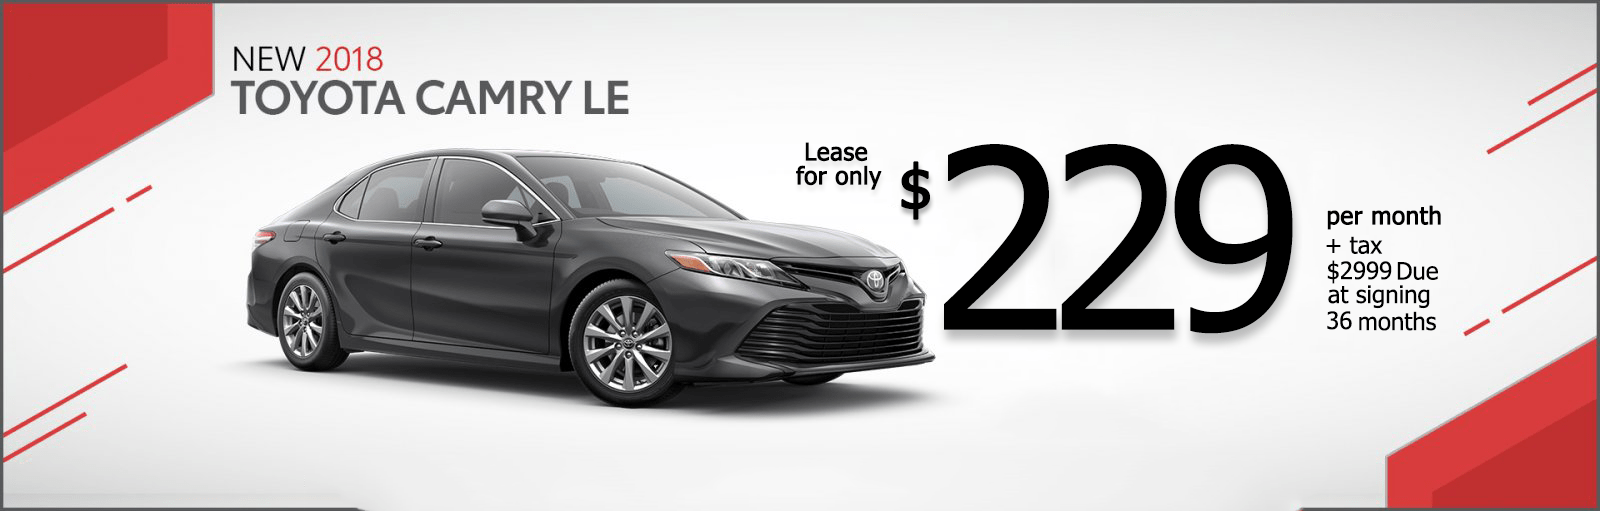 Camry LE Lease 229